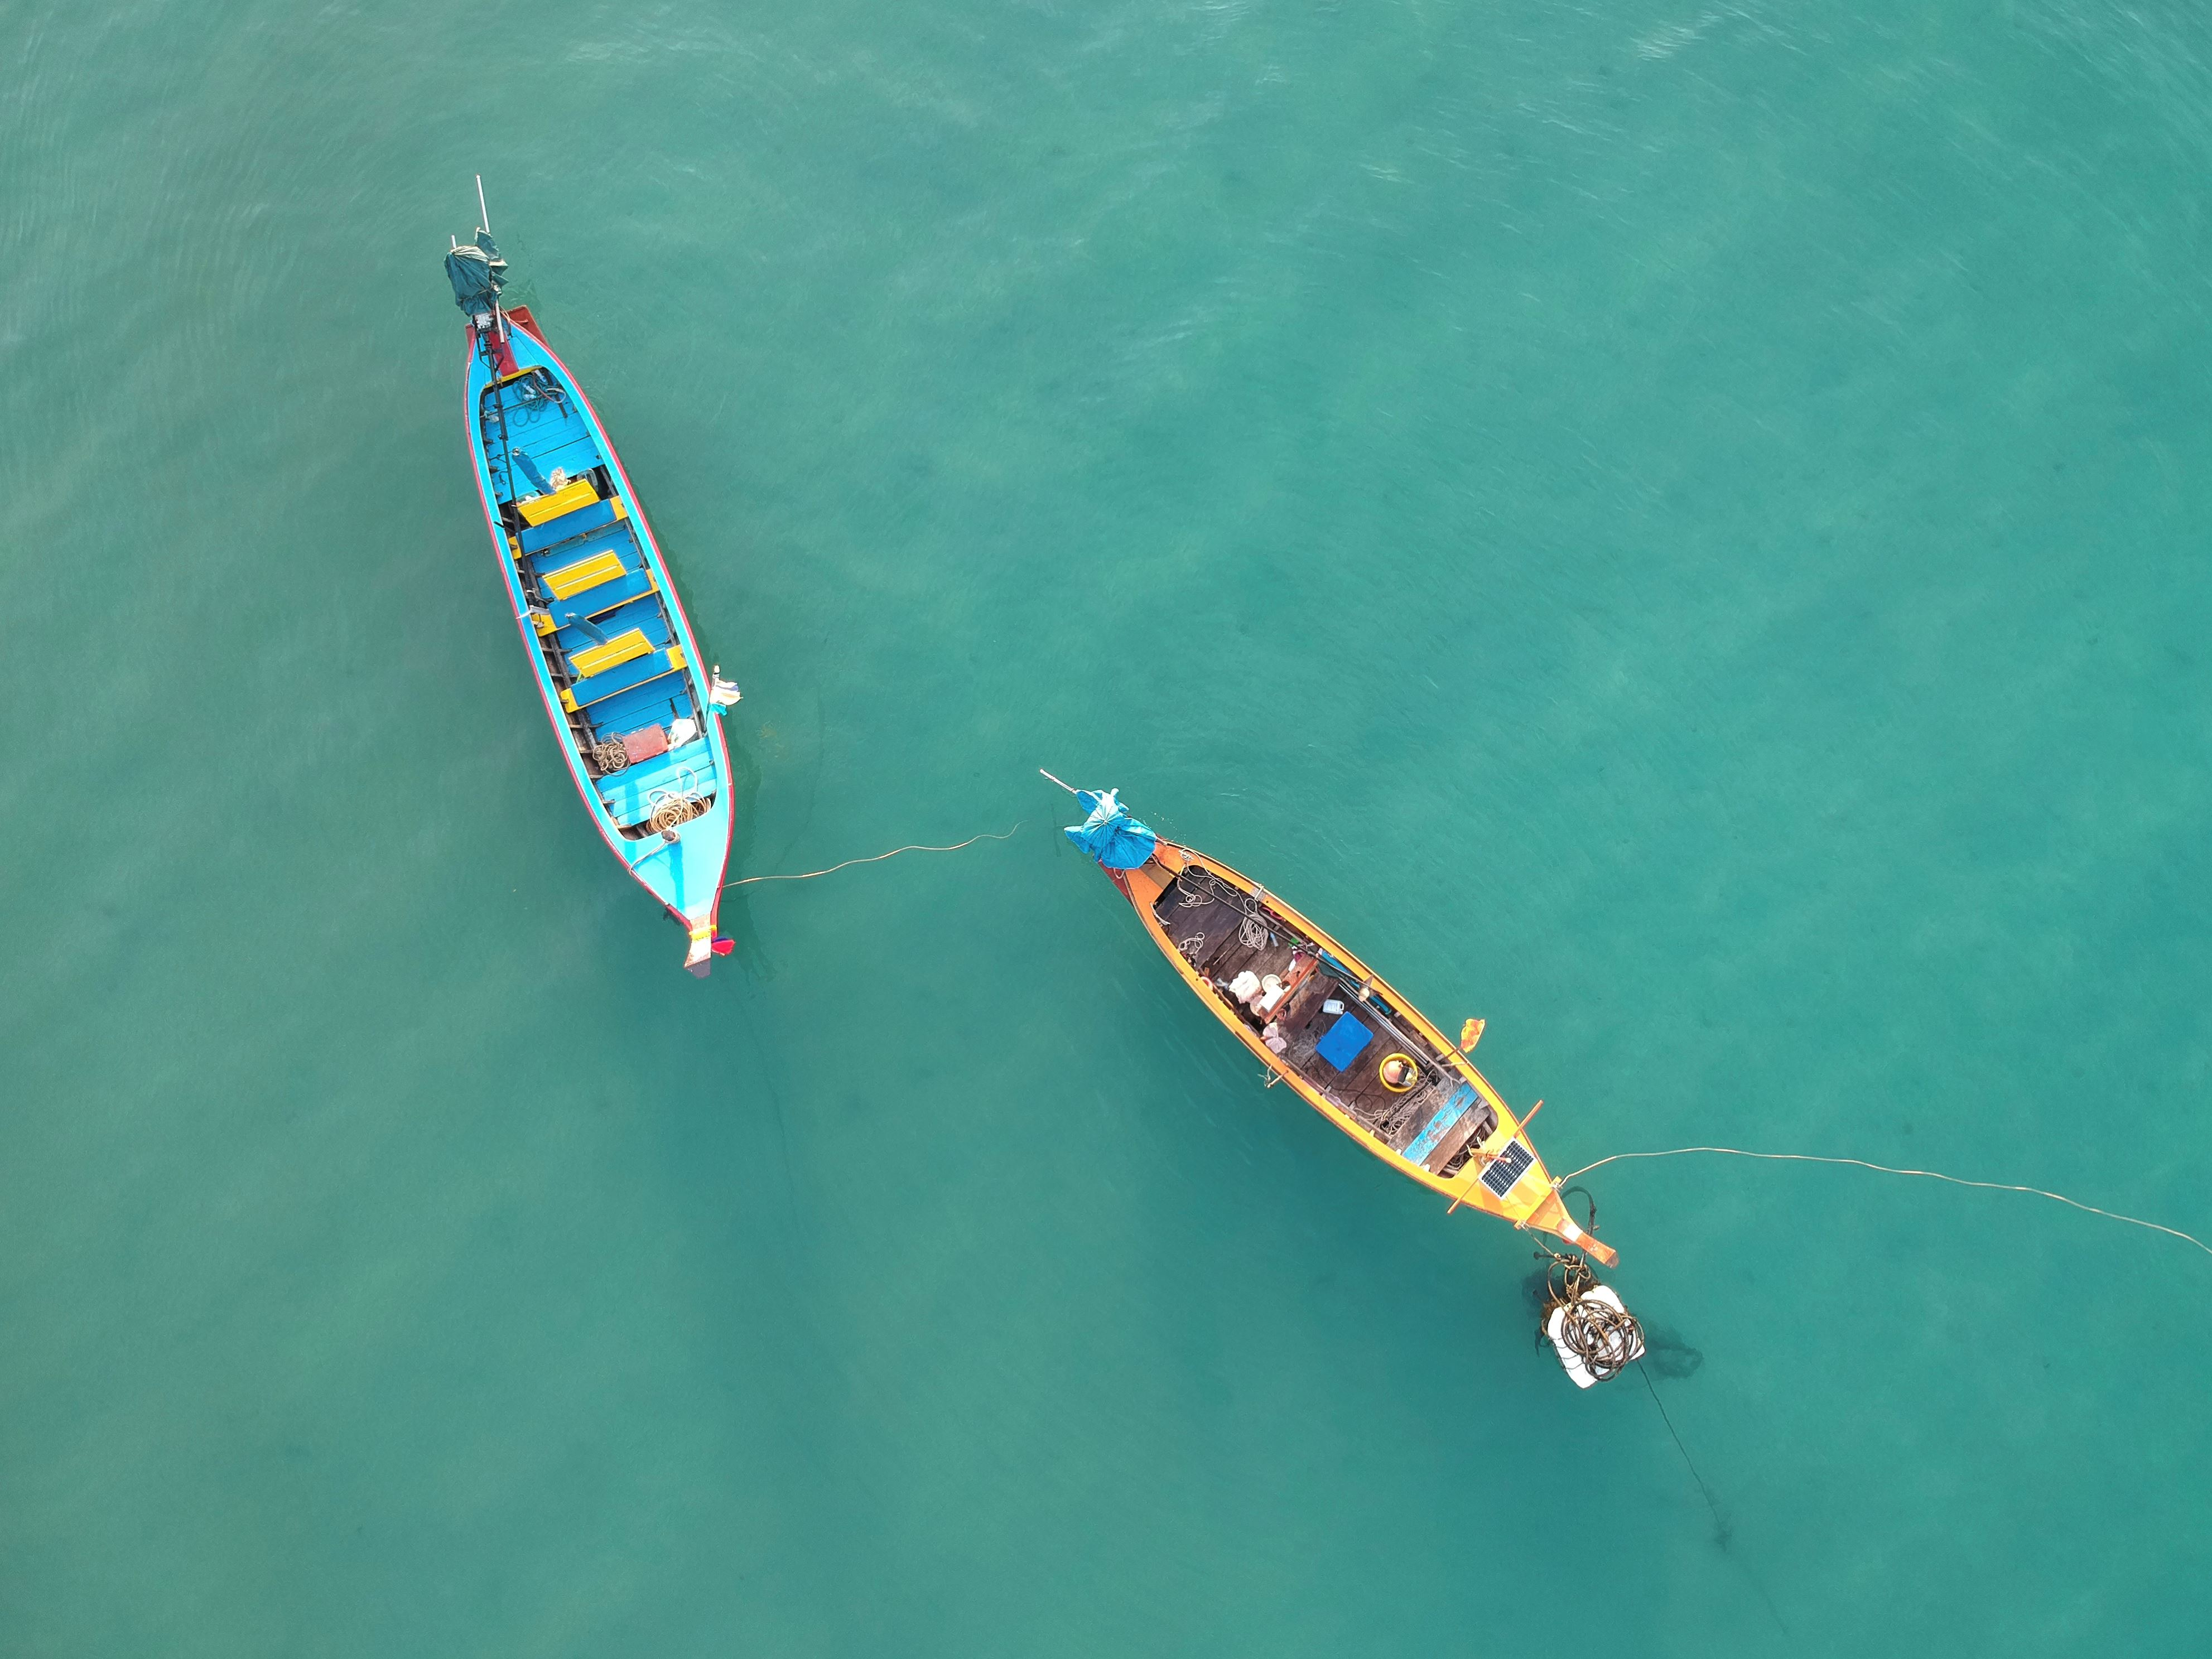 Slide 7 of 73: CAPTION: KATA BEACH, PHUKET, THAILAND - 2017/11/20: Aerial view of two longtail boats in the Andaman Sea. The small watercraft are commonly seen all over Thailand, particularly the seaside locations in the southern parts of the country. Editors Note: A drone was used for this picture. (Photo by Craig Ferguson/LightRocket via Getty Images)